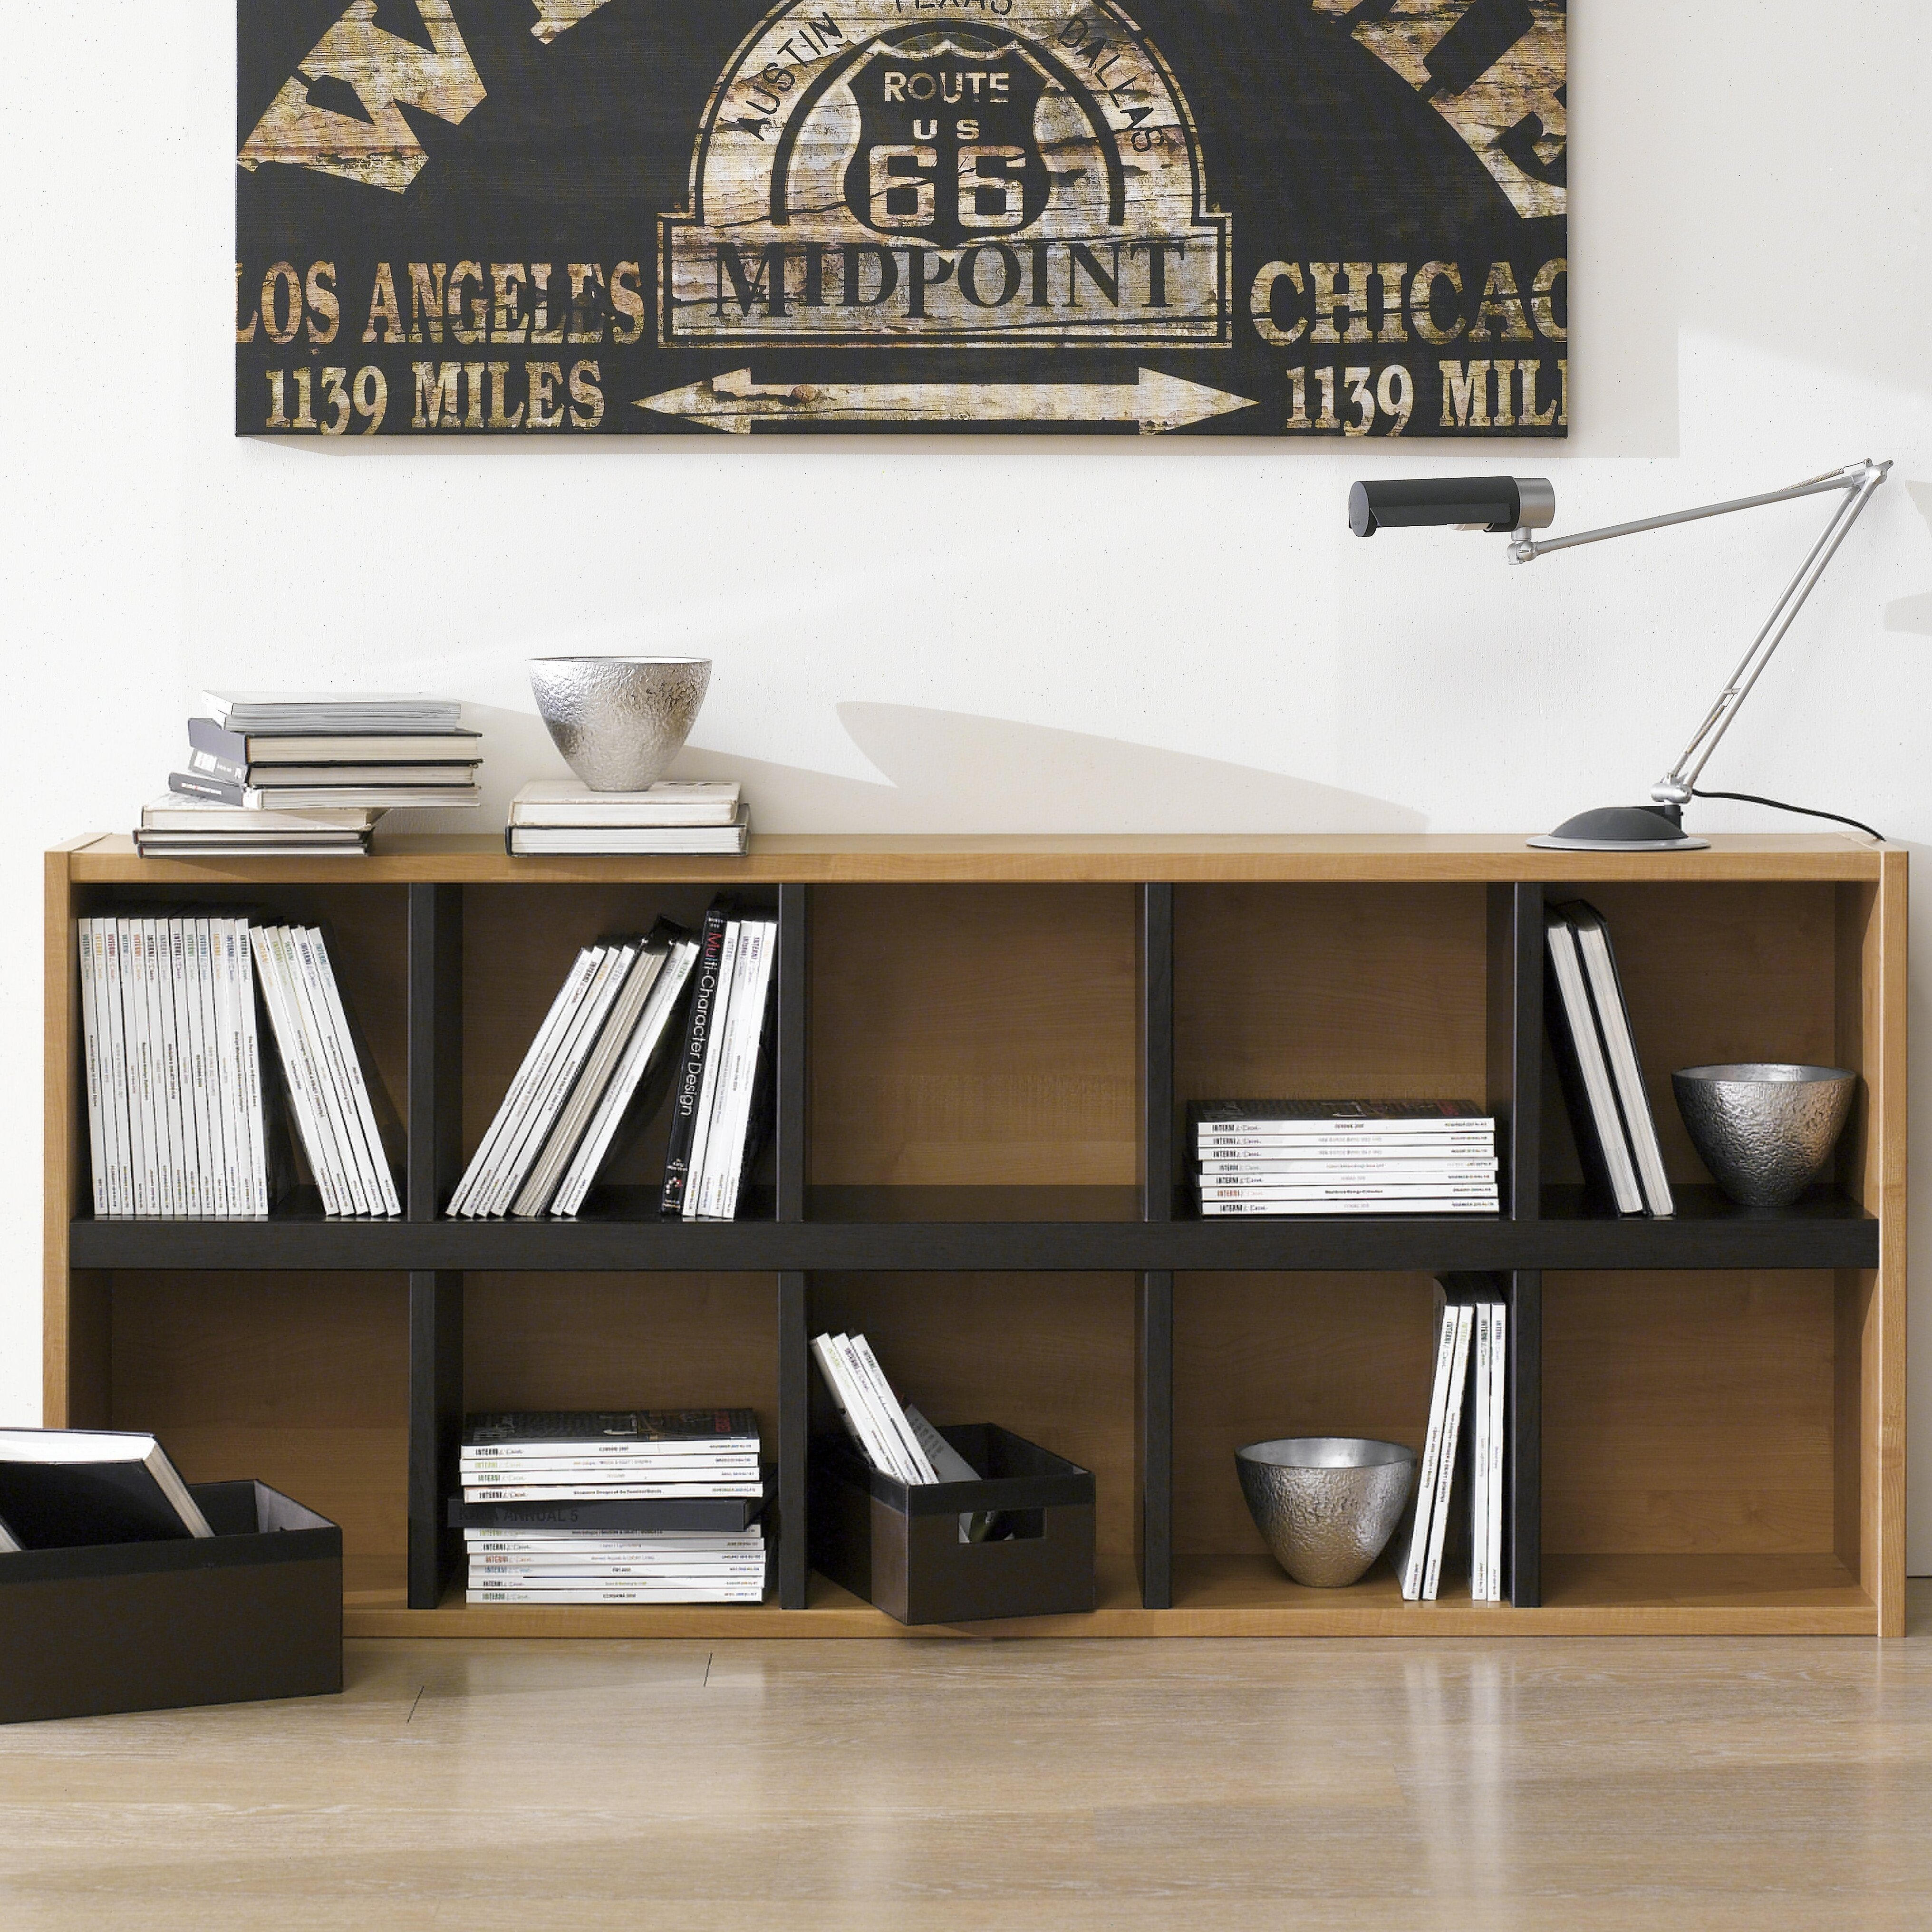 storage of multiple white mainstays bookcase worldstores delivery day luxury from cubed cube next fresh bookcases colors walmart